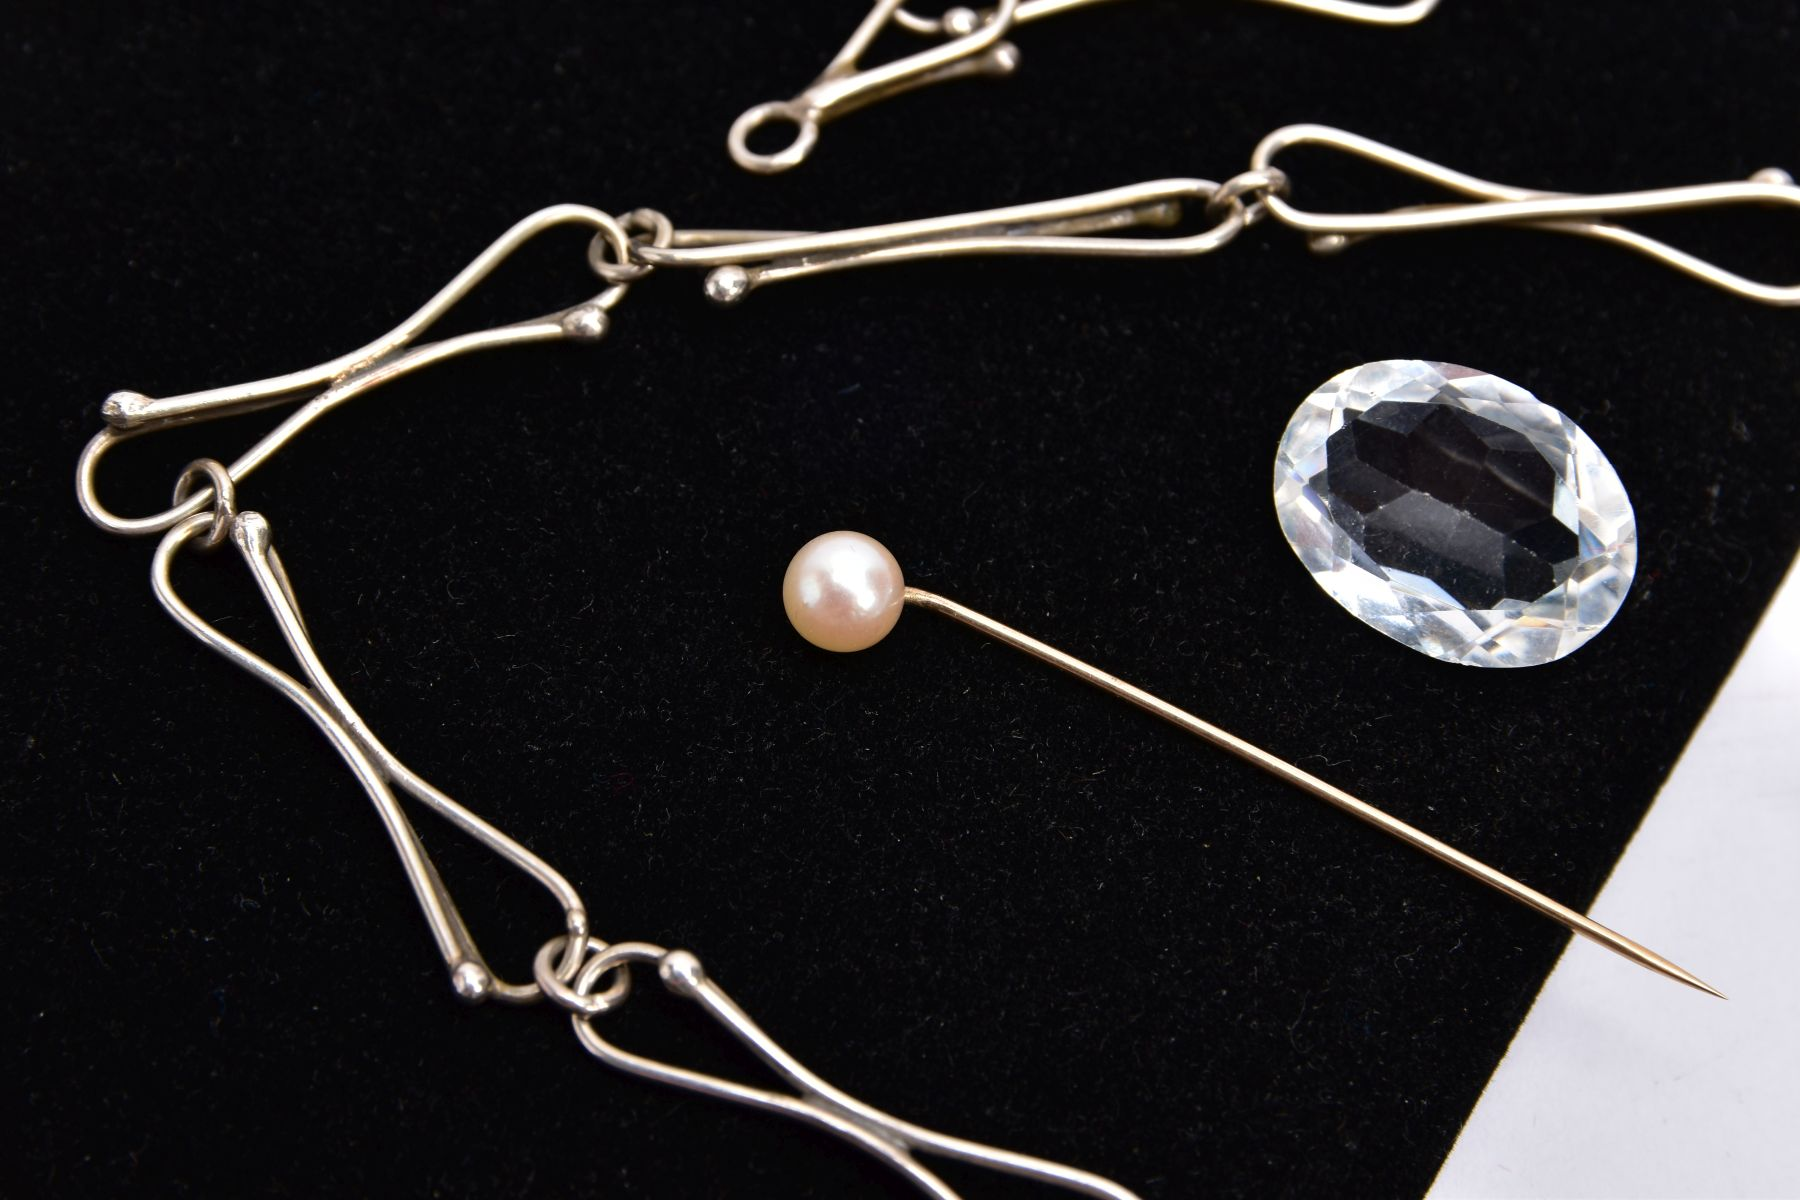 A SILVER AMBER NECKLACE, SILVER CUFFLINKS, STICK PIN, CUFFLINKS, ETC, the silver necklet designed - Image 3 of 5